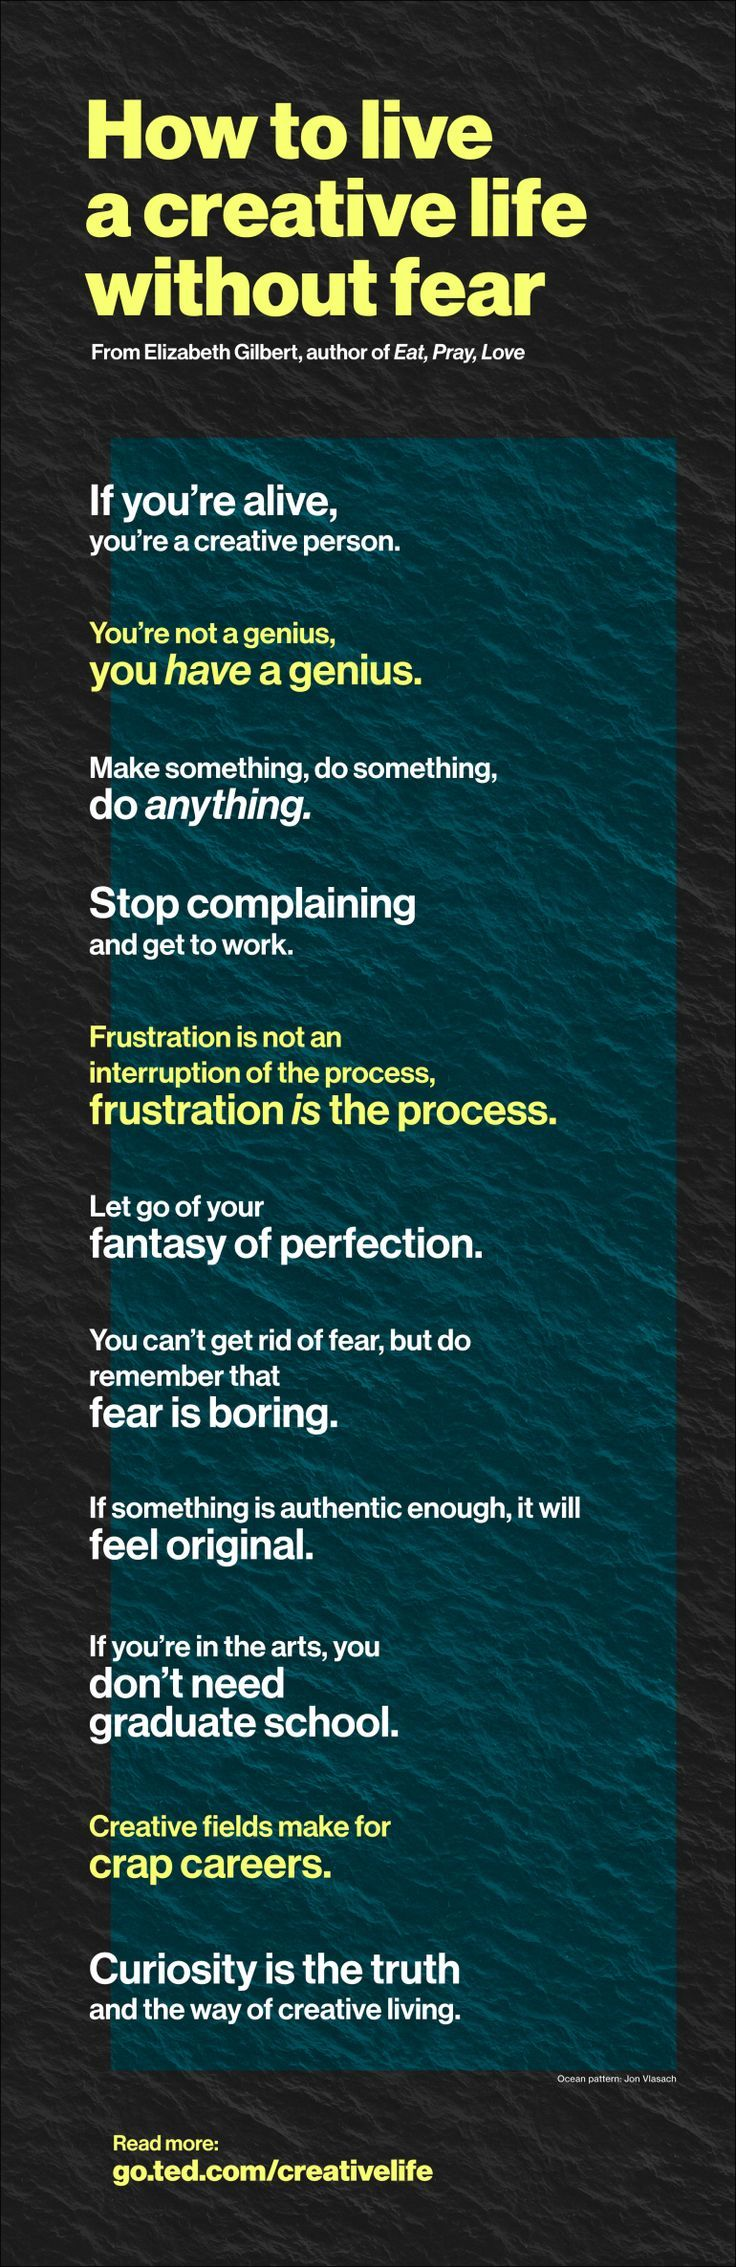 "Fear is boring, and other tips for living a creative life | <a href="""" rel=""nofollow"" target=""_blank""></a>"